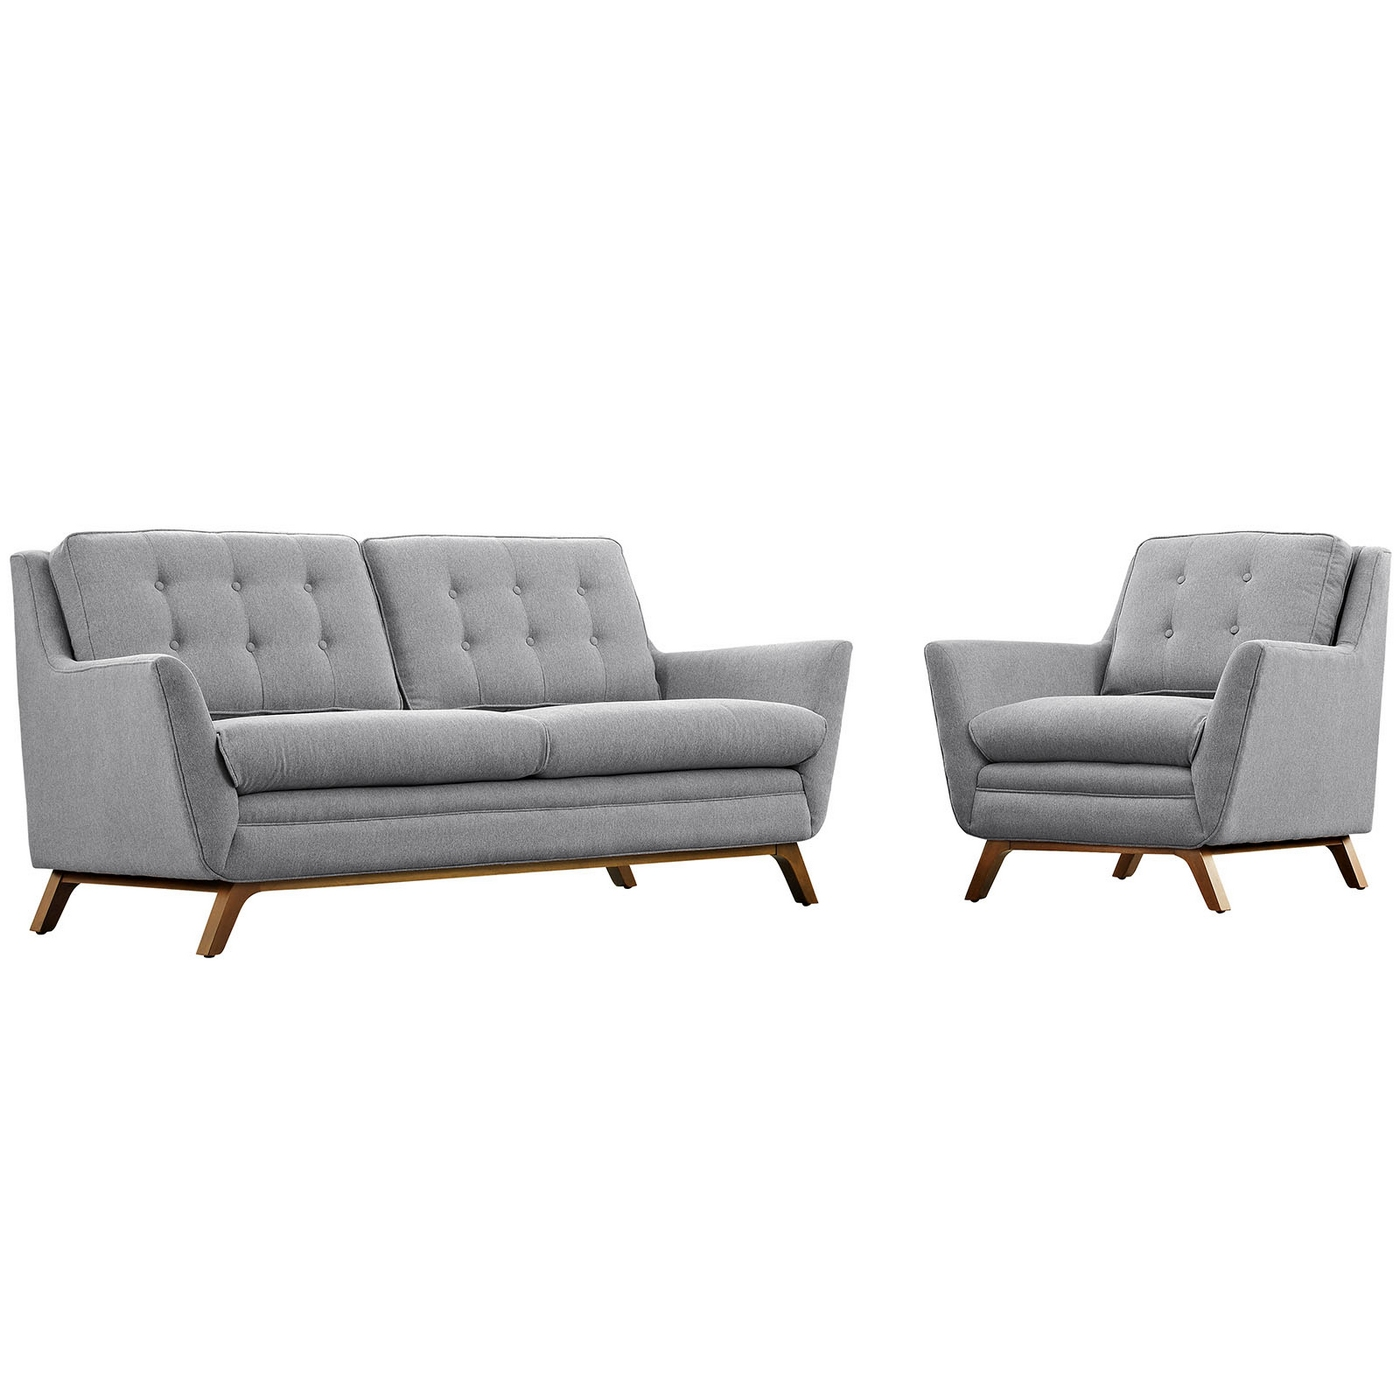 2pc Upholstered Loveseat & Armchair Living Room Set, Expectation Gray